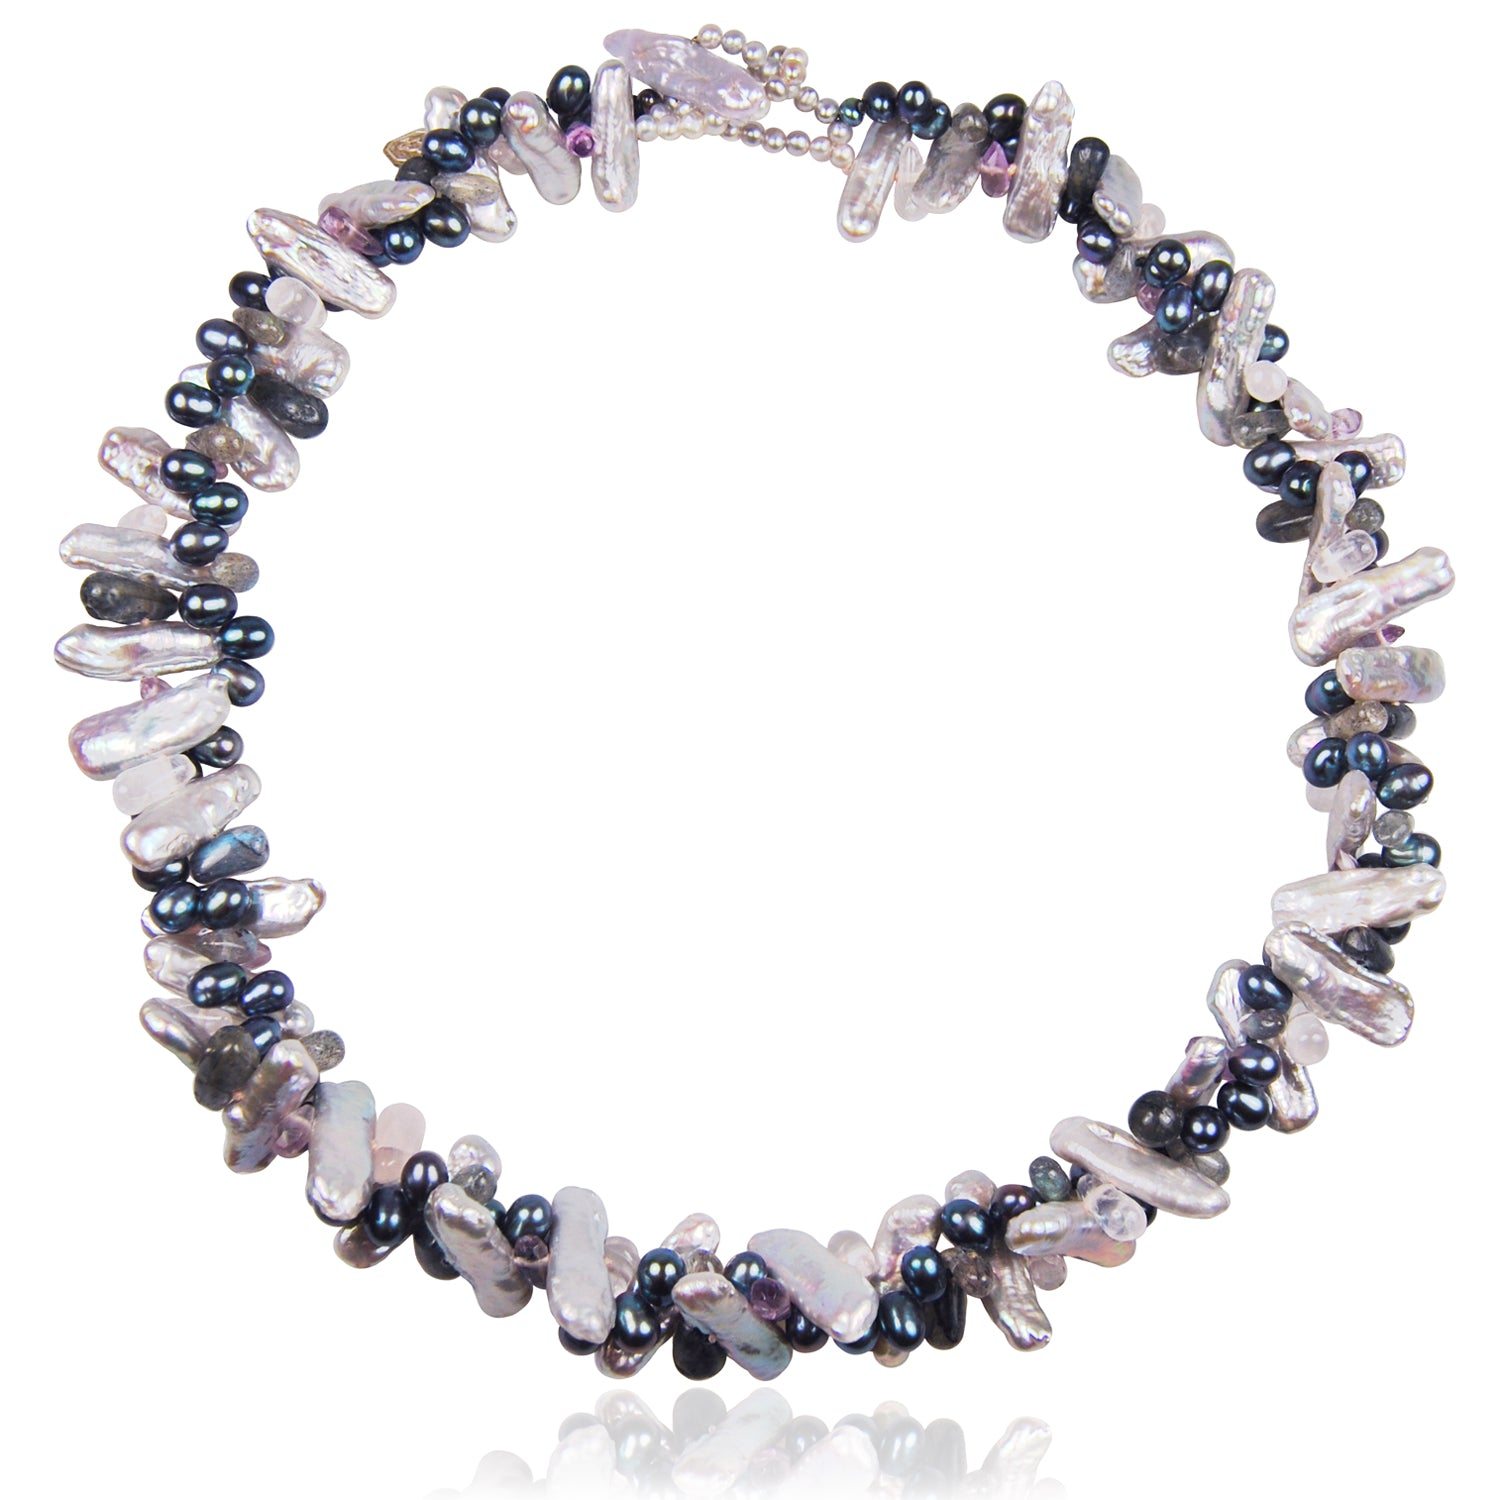 Asia' Mixed Pearl and Semi Precious Stone Necklace in Grey